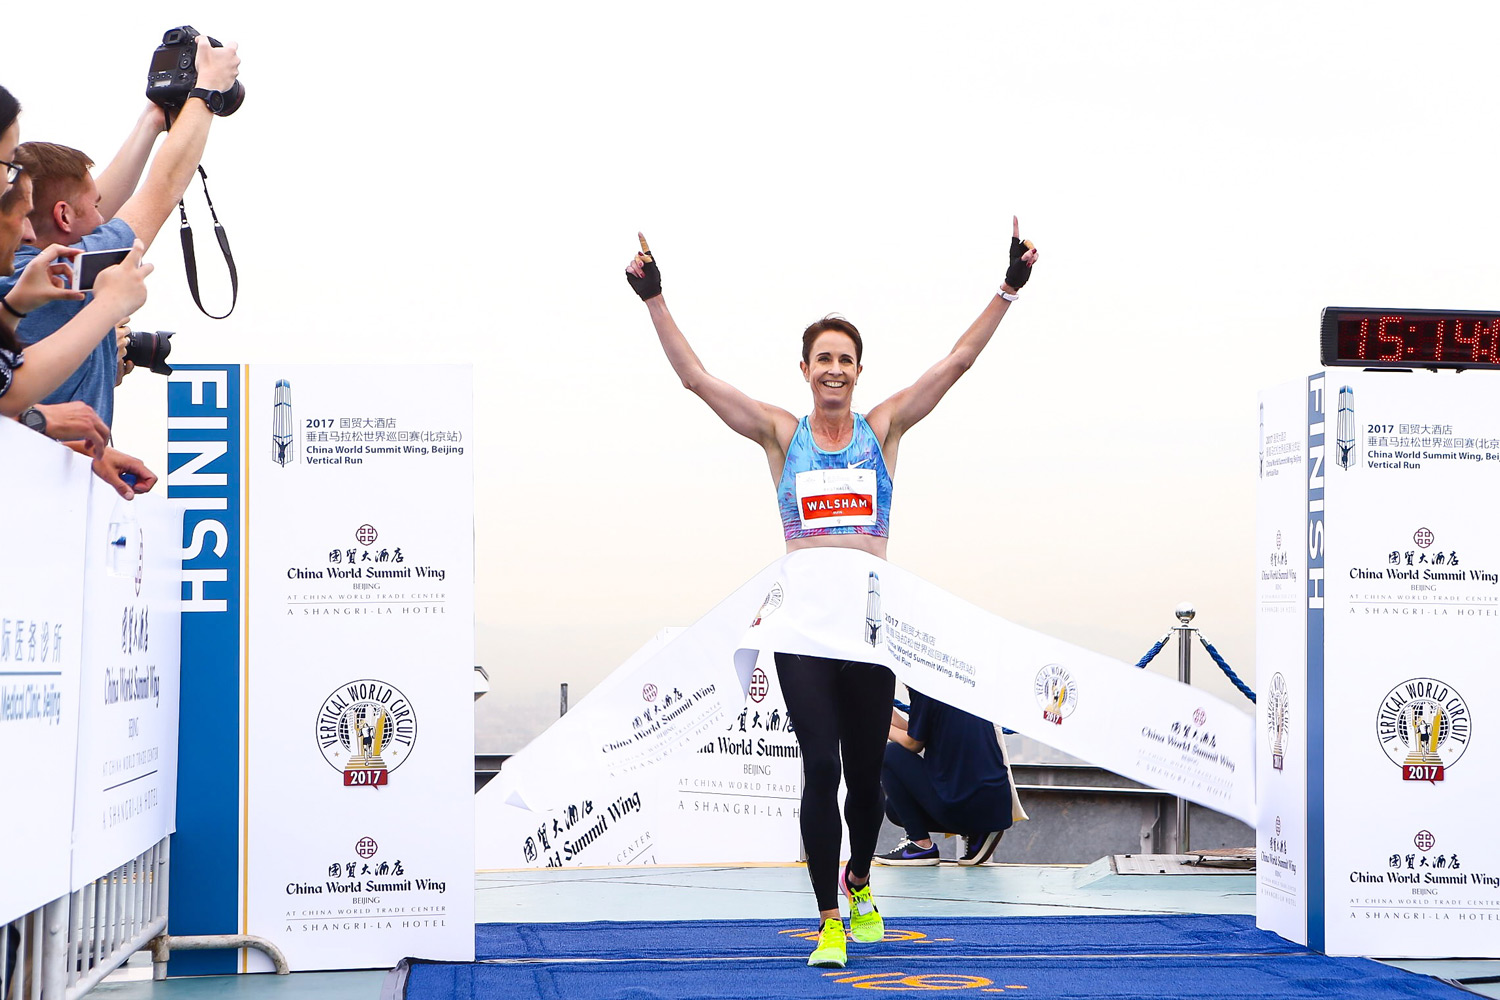 Race winner and VWC ranking leader Suzy Walsham summits China World Summit Wing Beijing Vertical Run. ©Sporting Republic